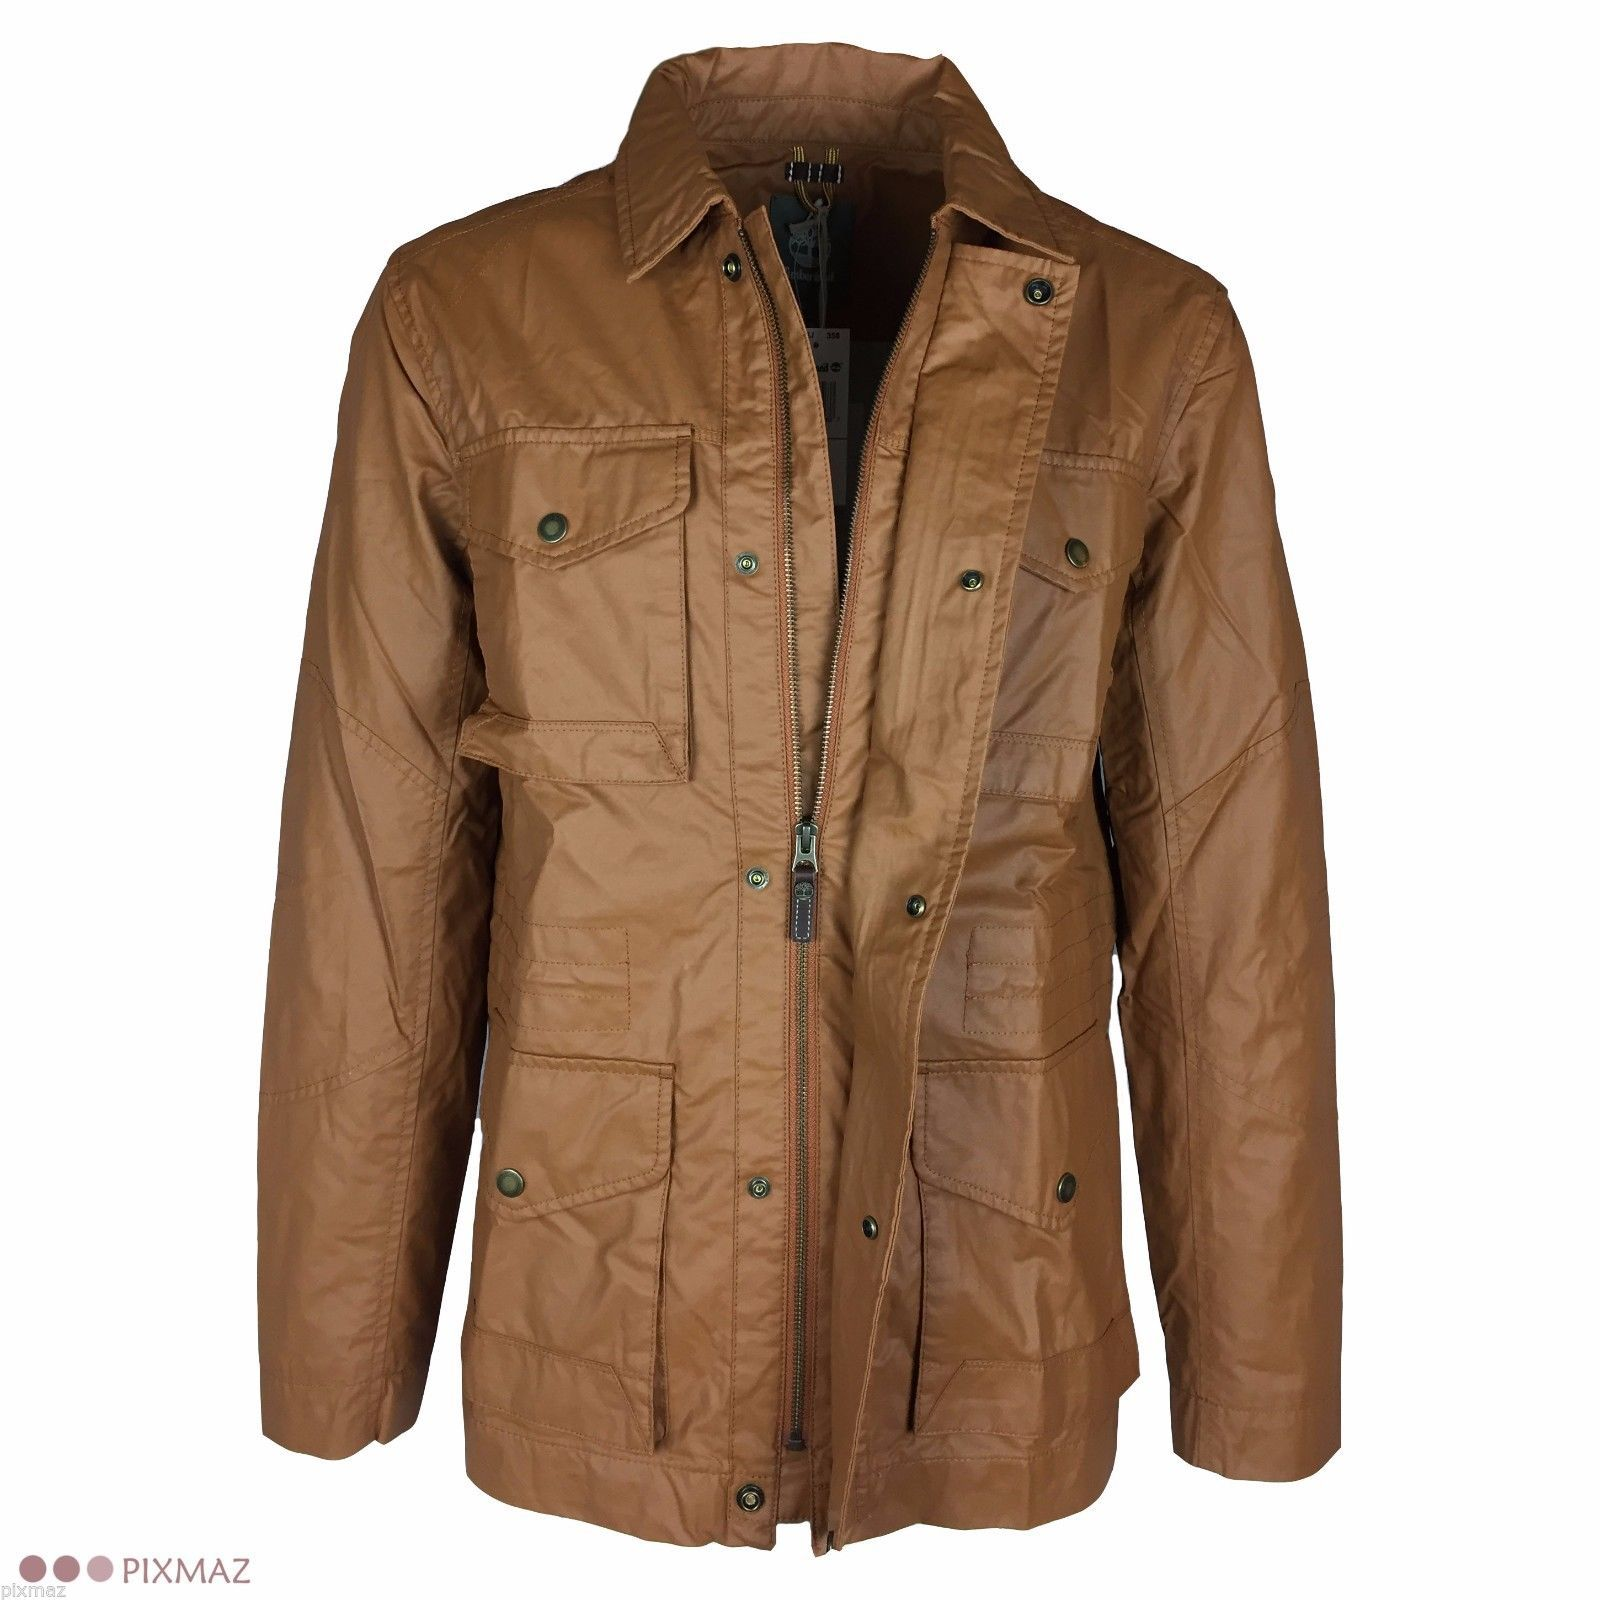 Timberland Men's Mount Wilson Field Fir Yellow Jacket Style #5513J image 2